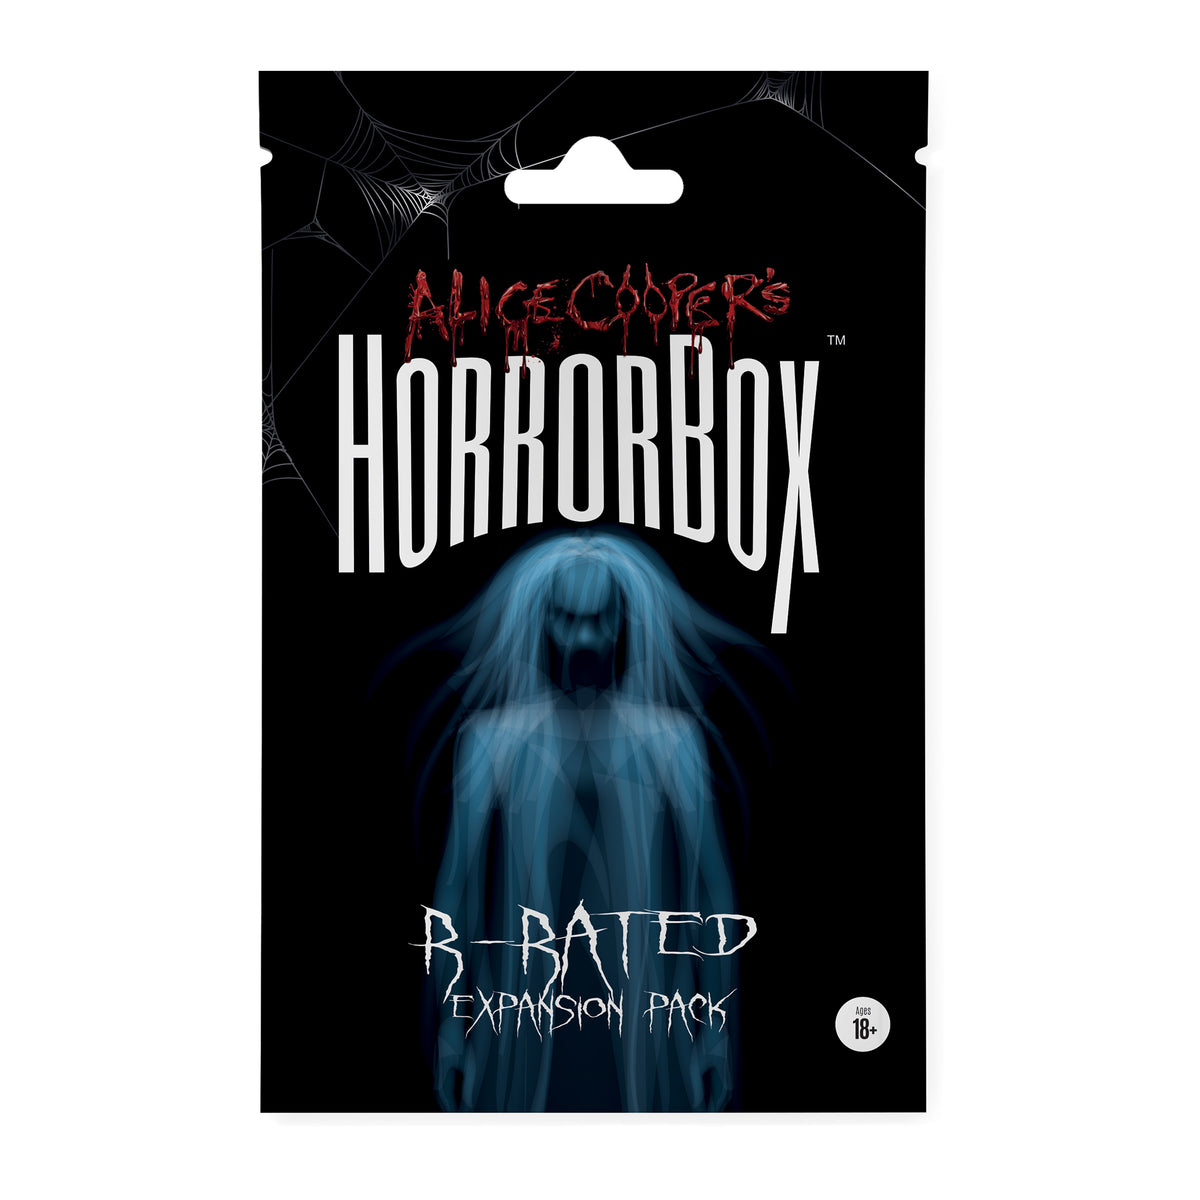 HorrorBox™ - R-Rated Expansion Pack